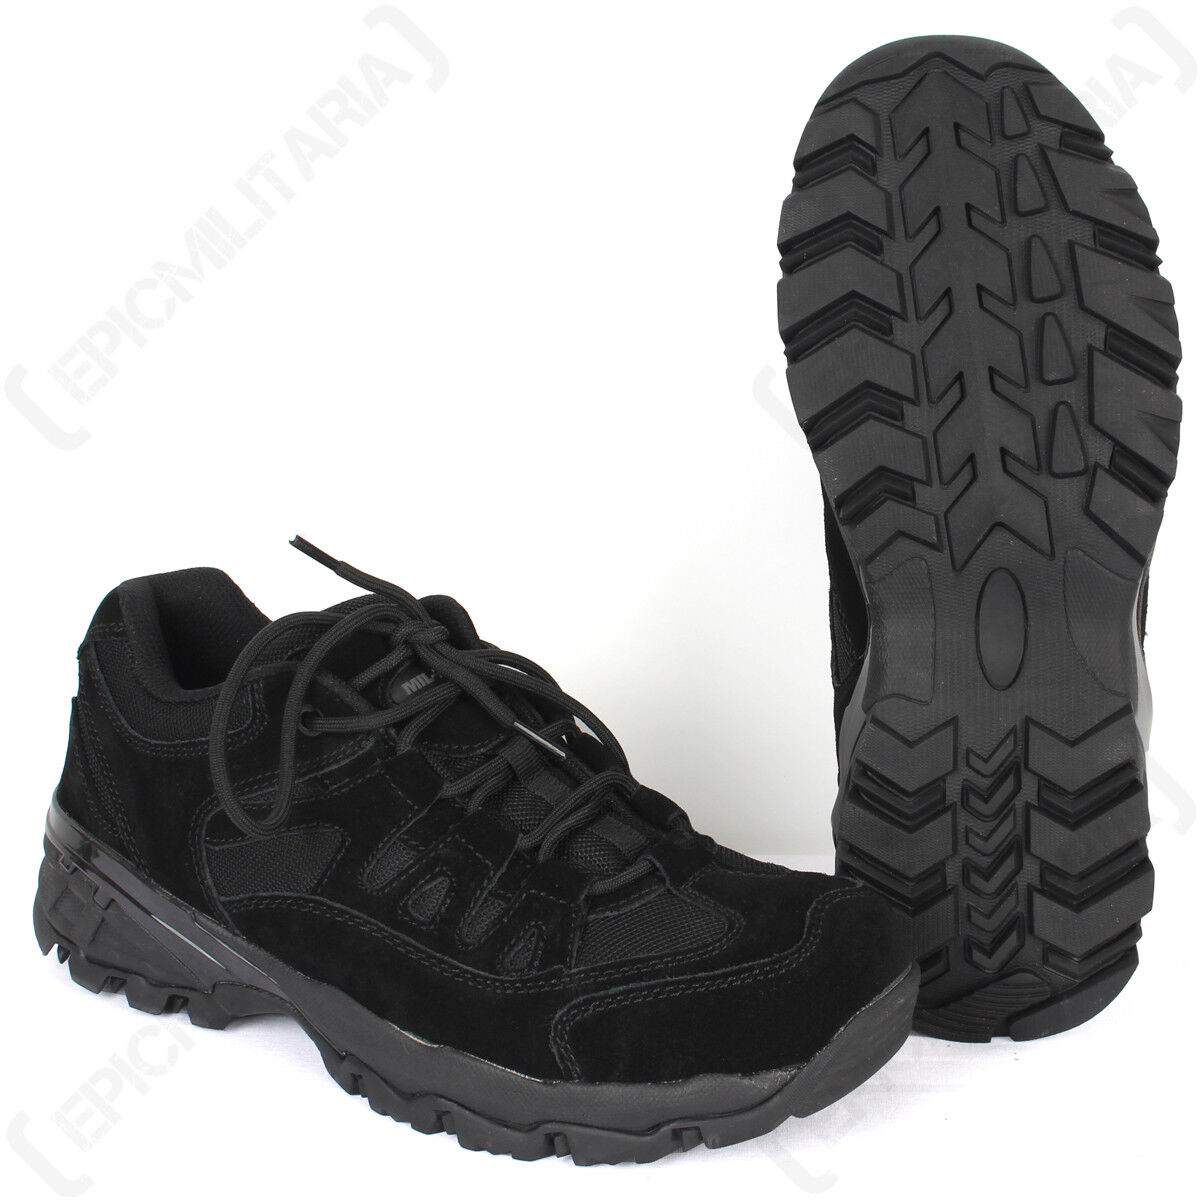 Black Squad Shoes - Walking Hiking Work Security Outdoor Footwear All Sizes New